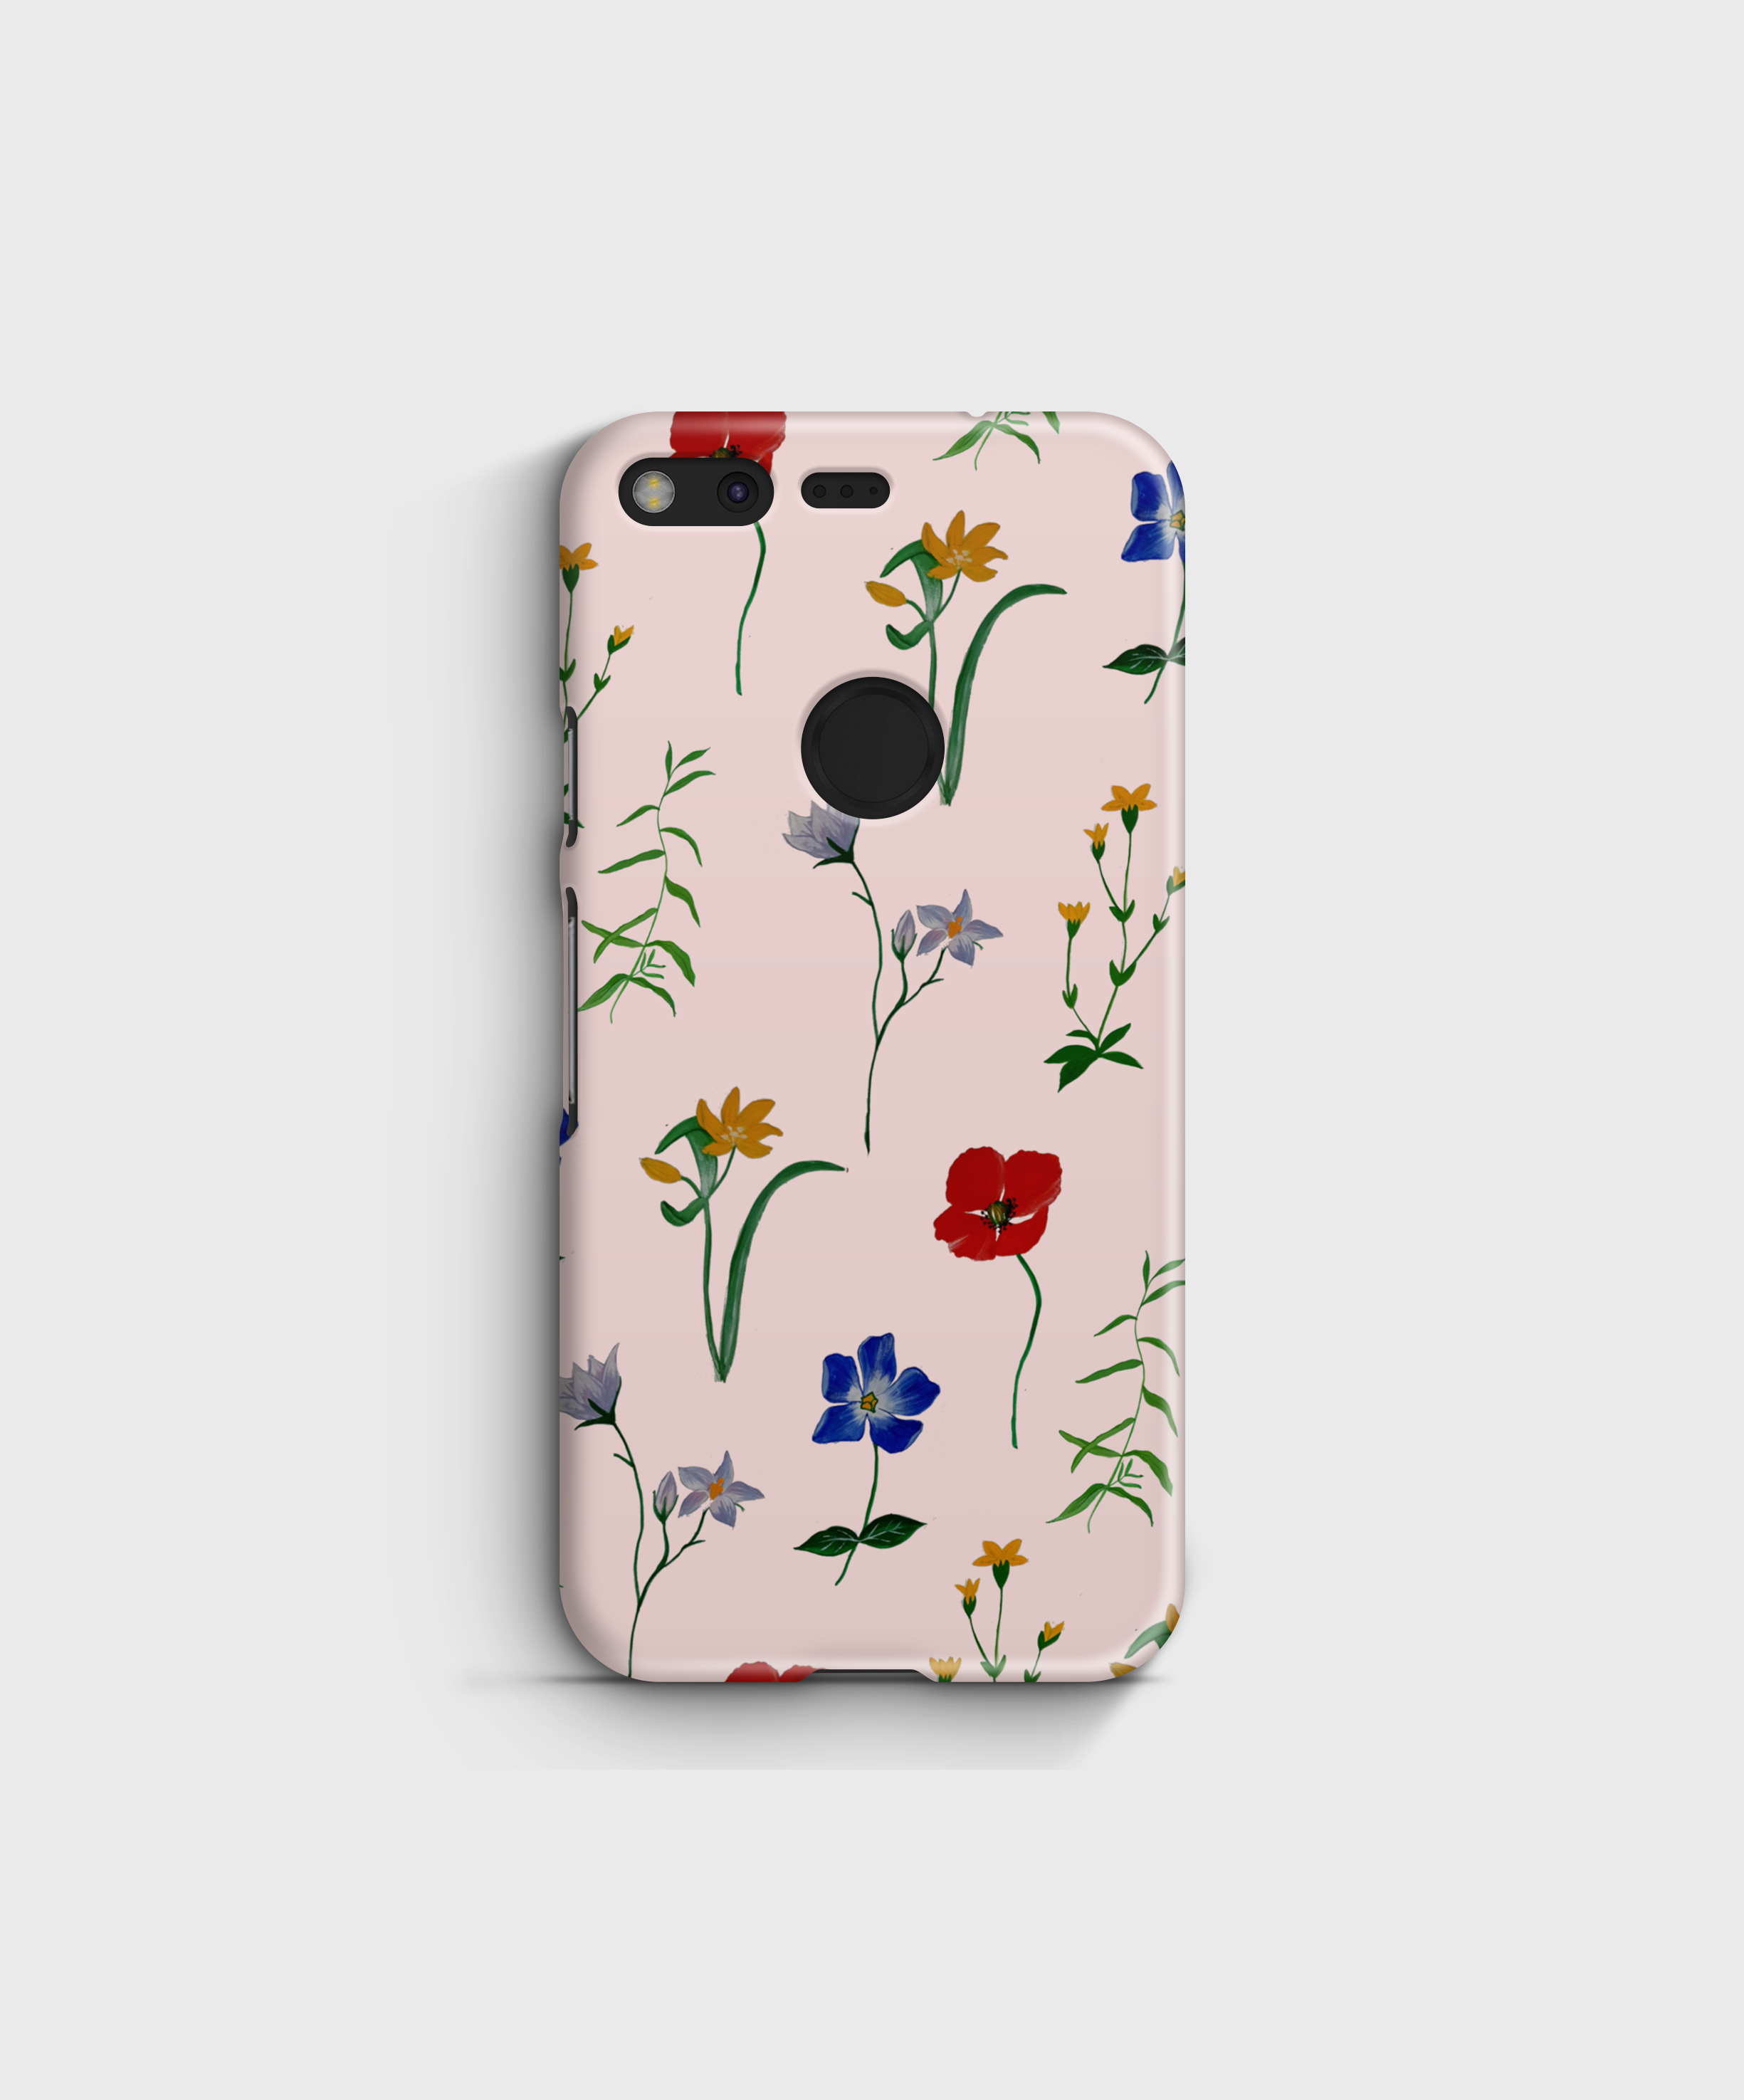 Wildflowers Phone Case - Google Pixel